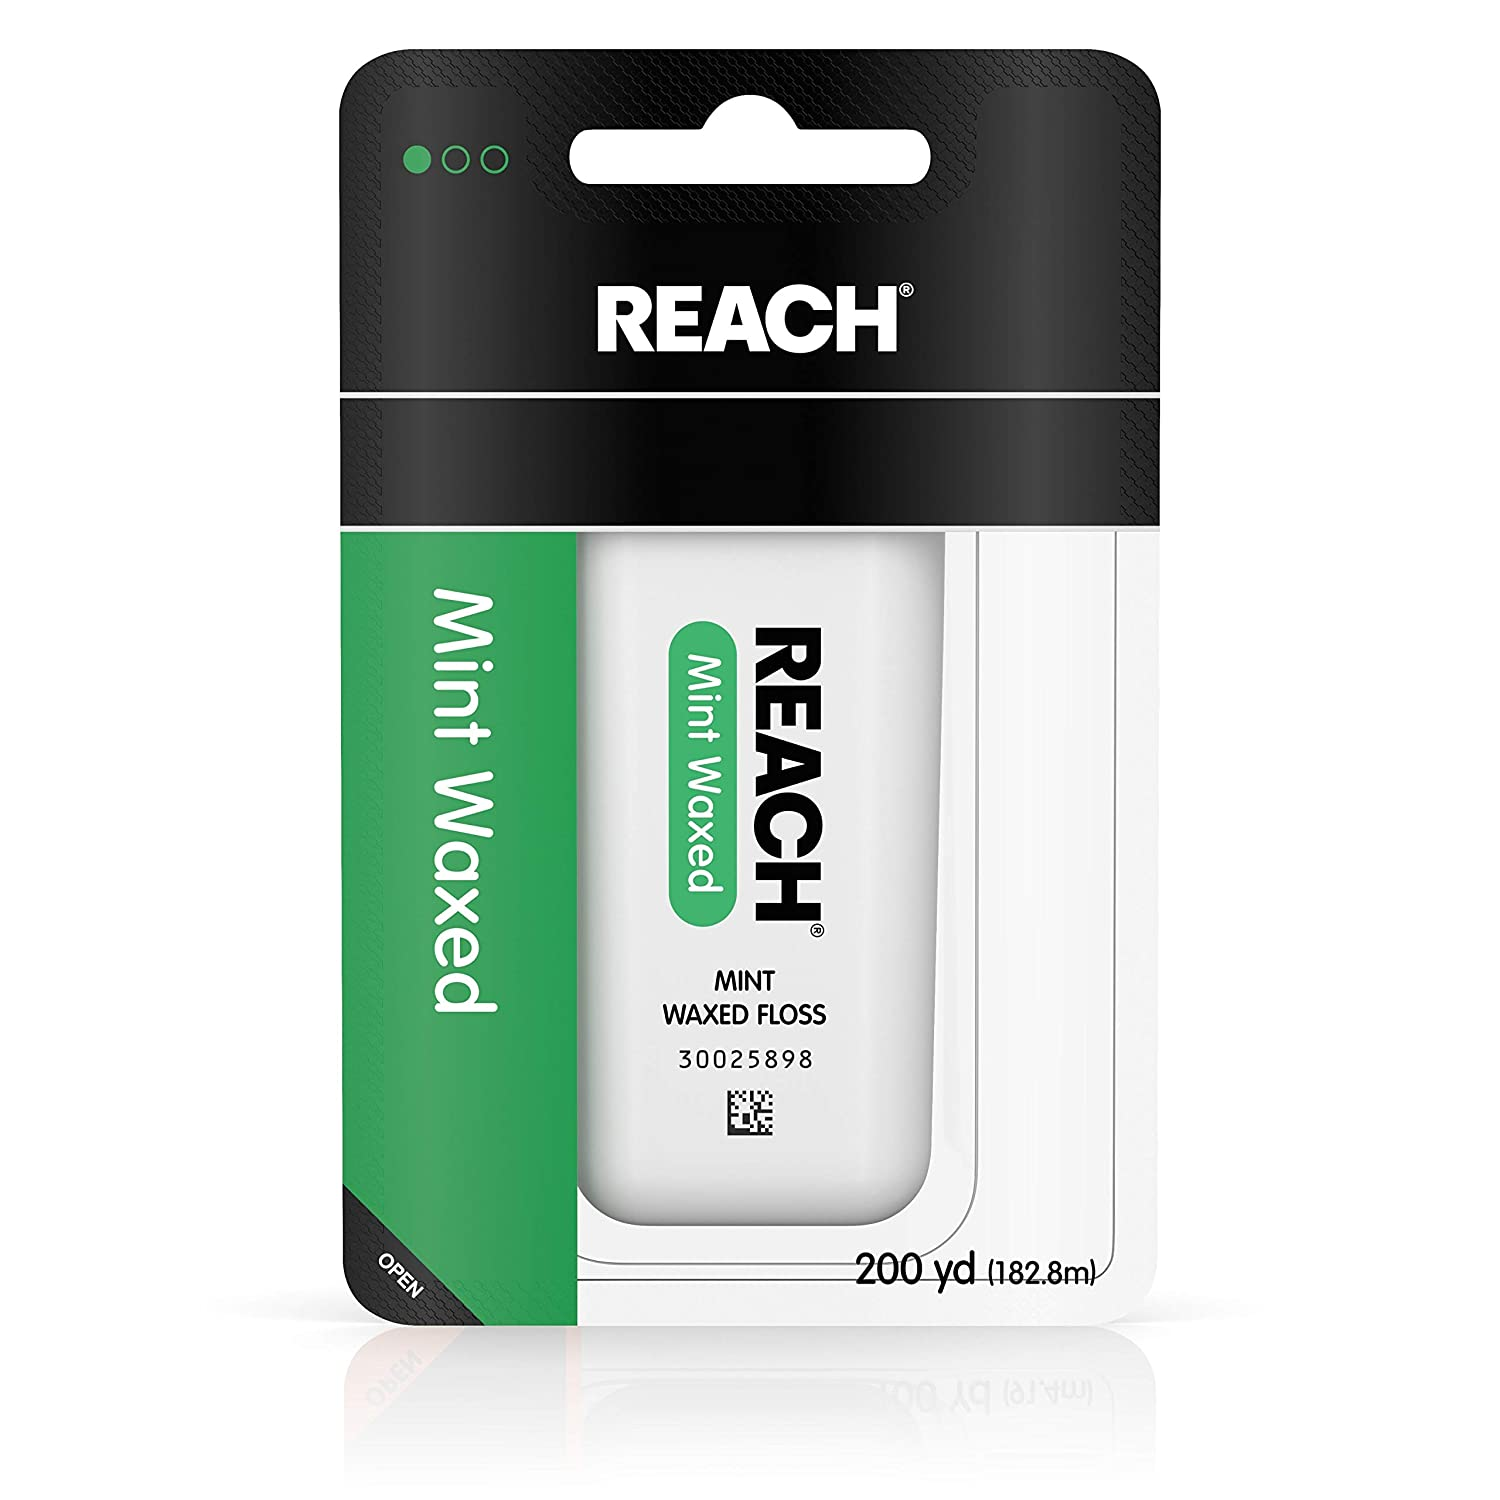 Reach Mint Waxed Floss, 200 Yd Pack of 1